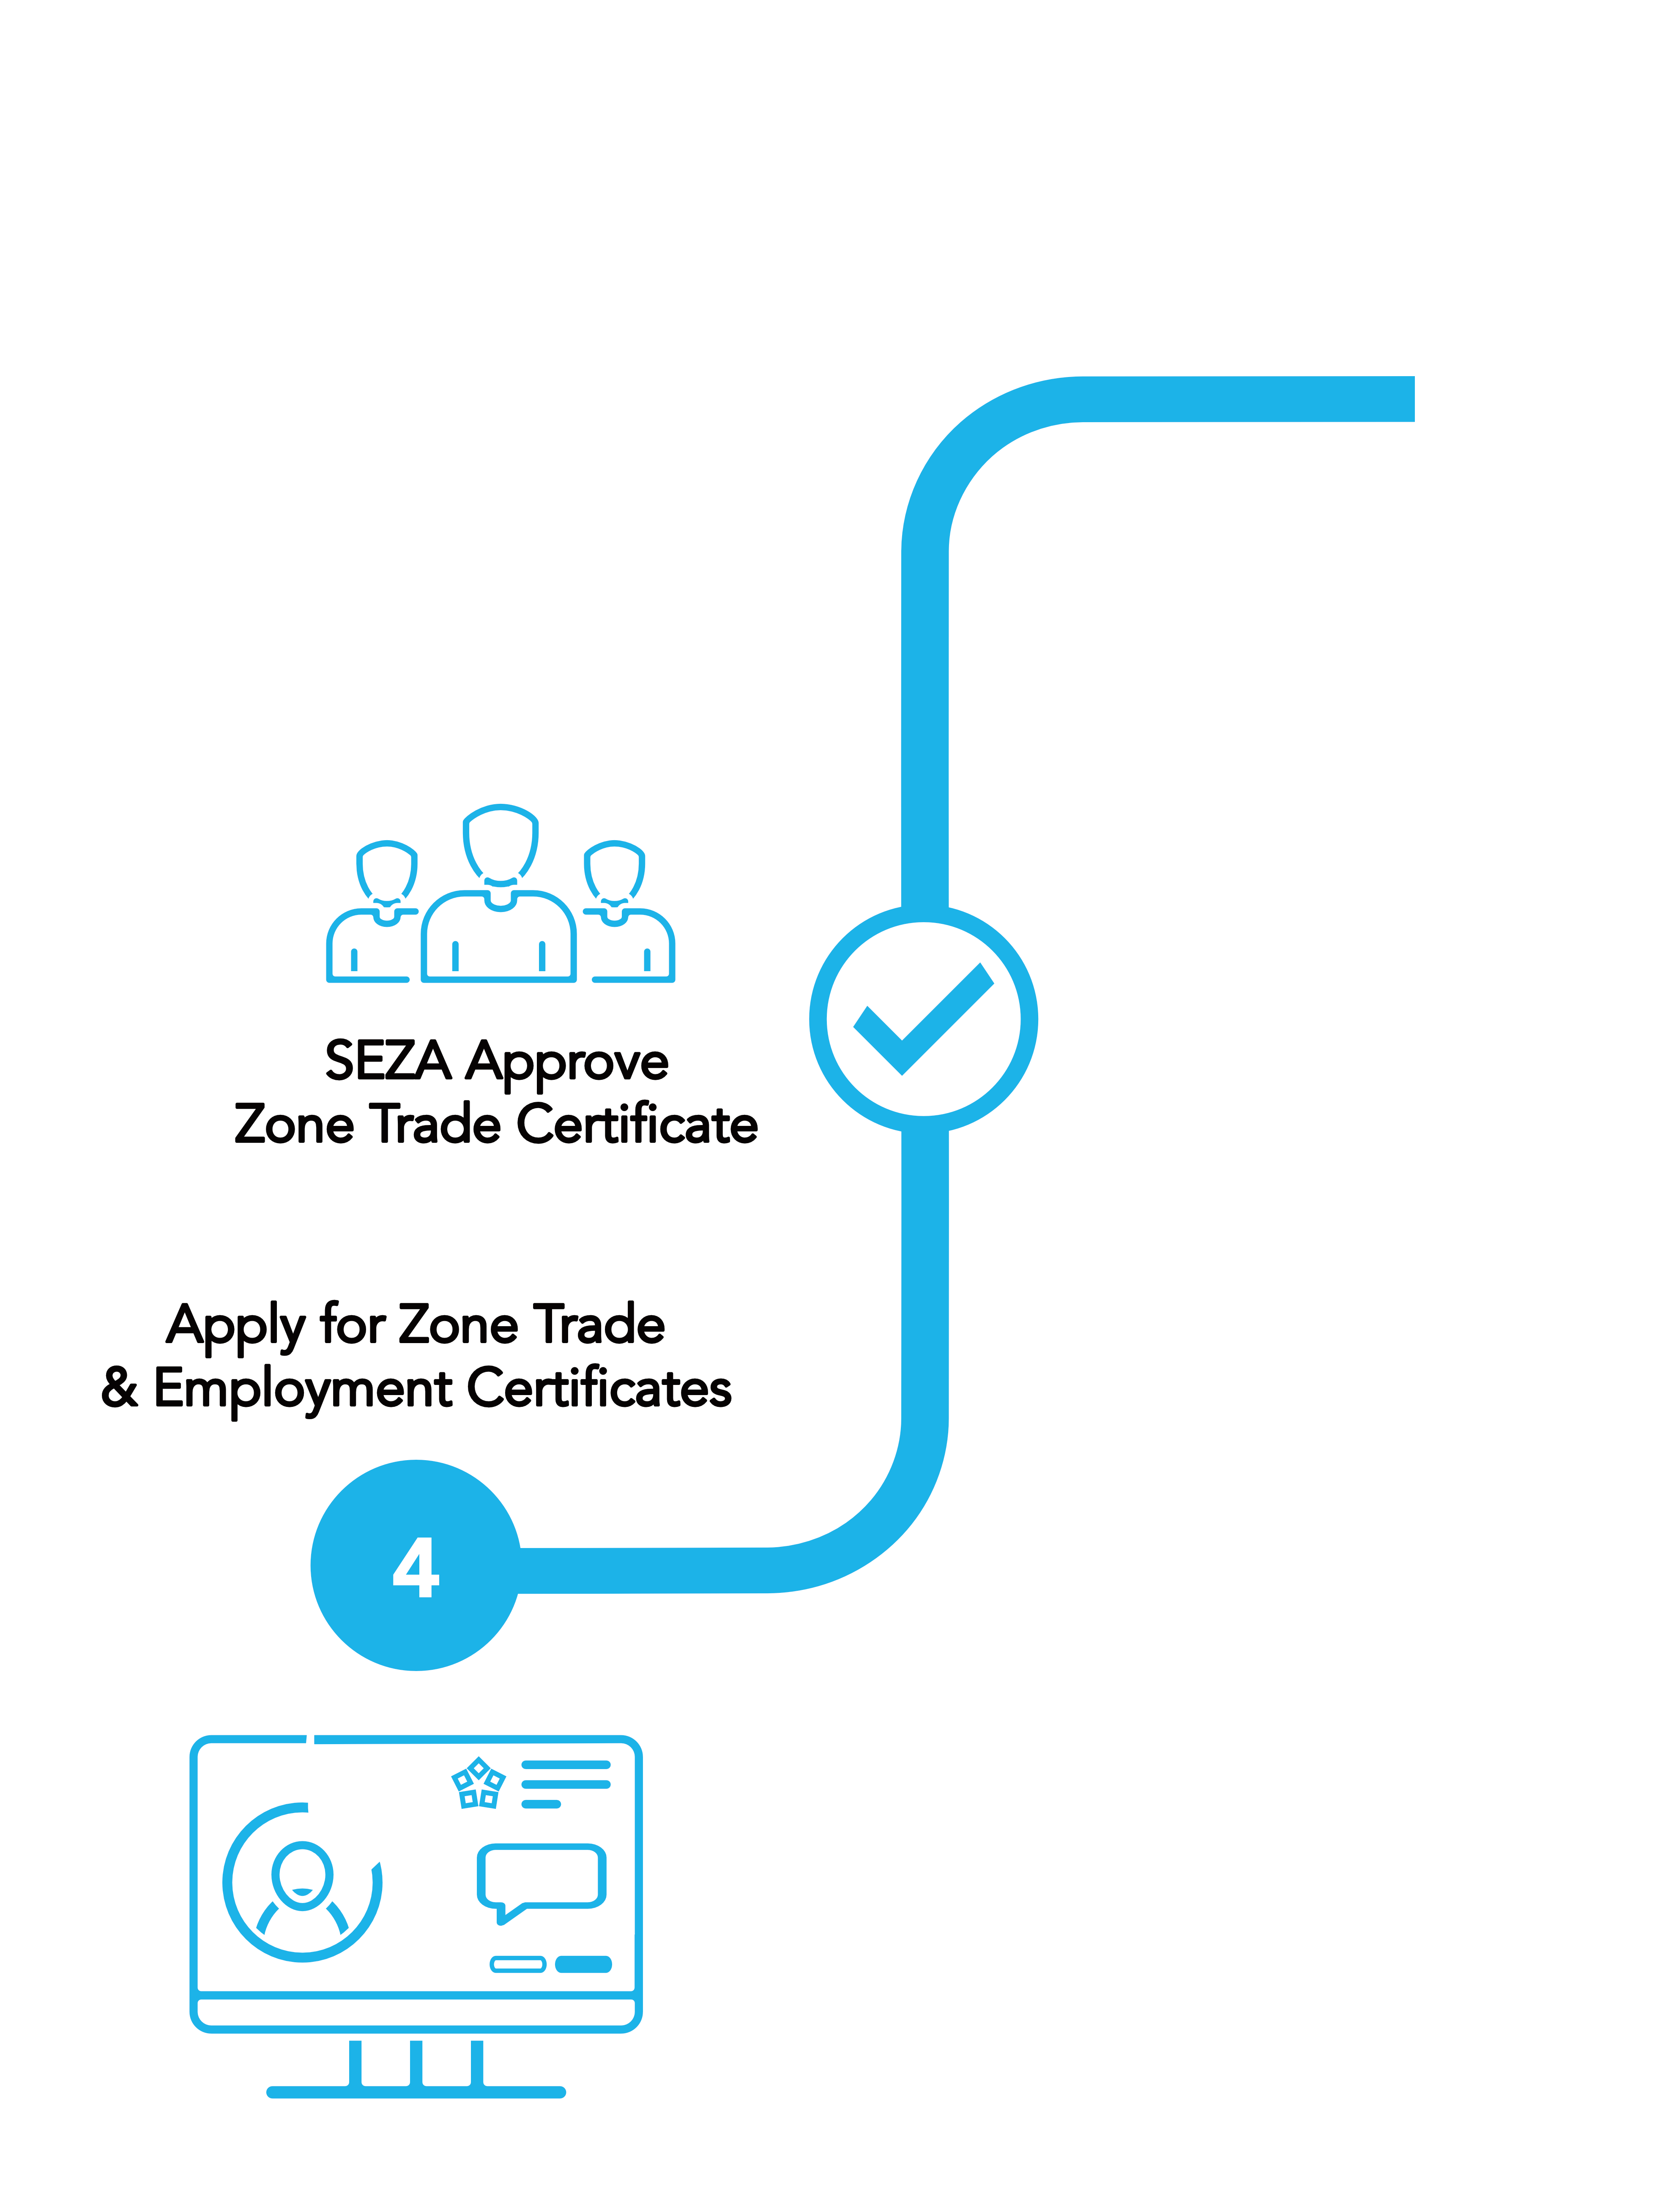 Apply for Zone Trade & Employment Certificates